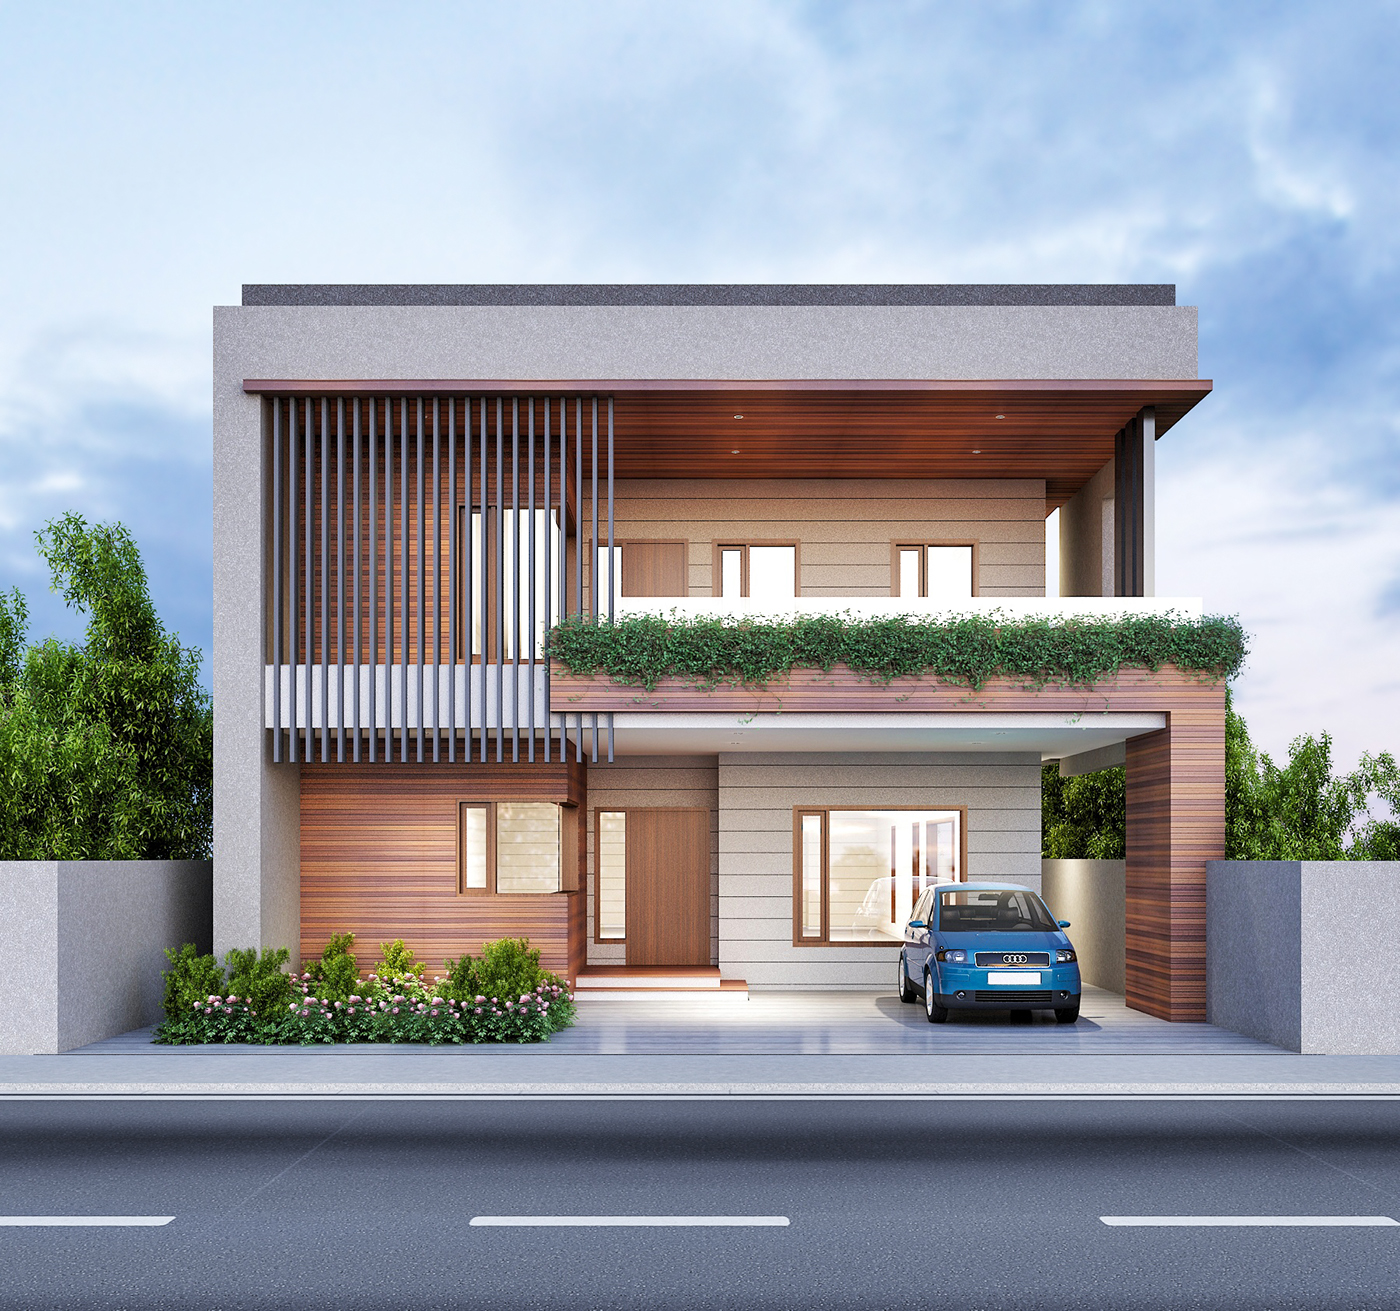 Renders exterior on behance for House front gallery design